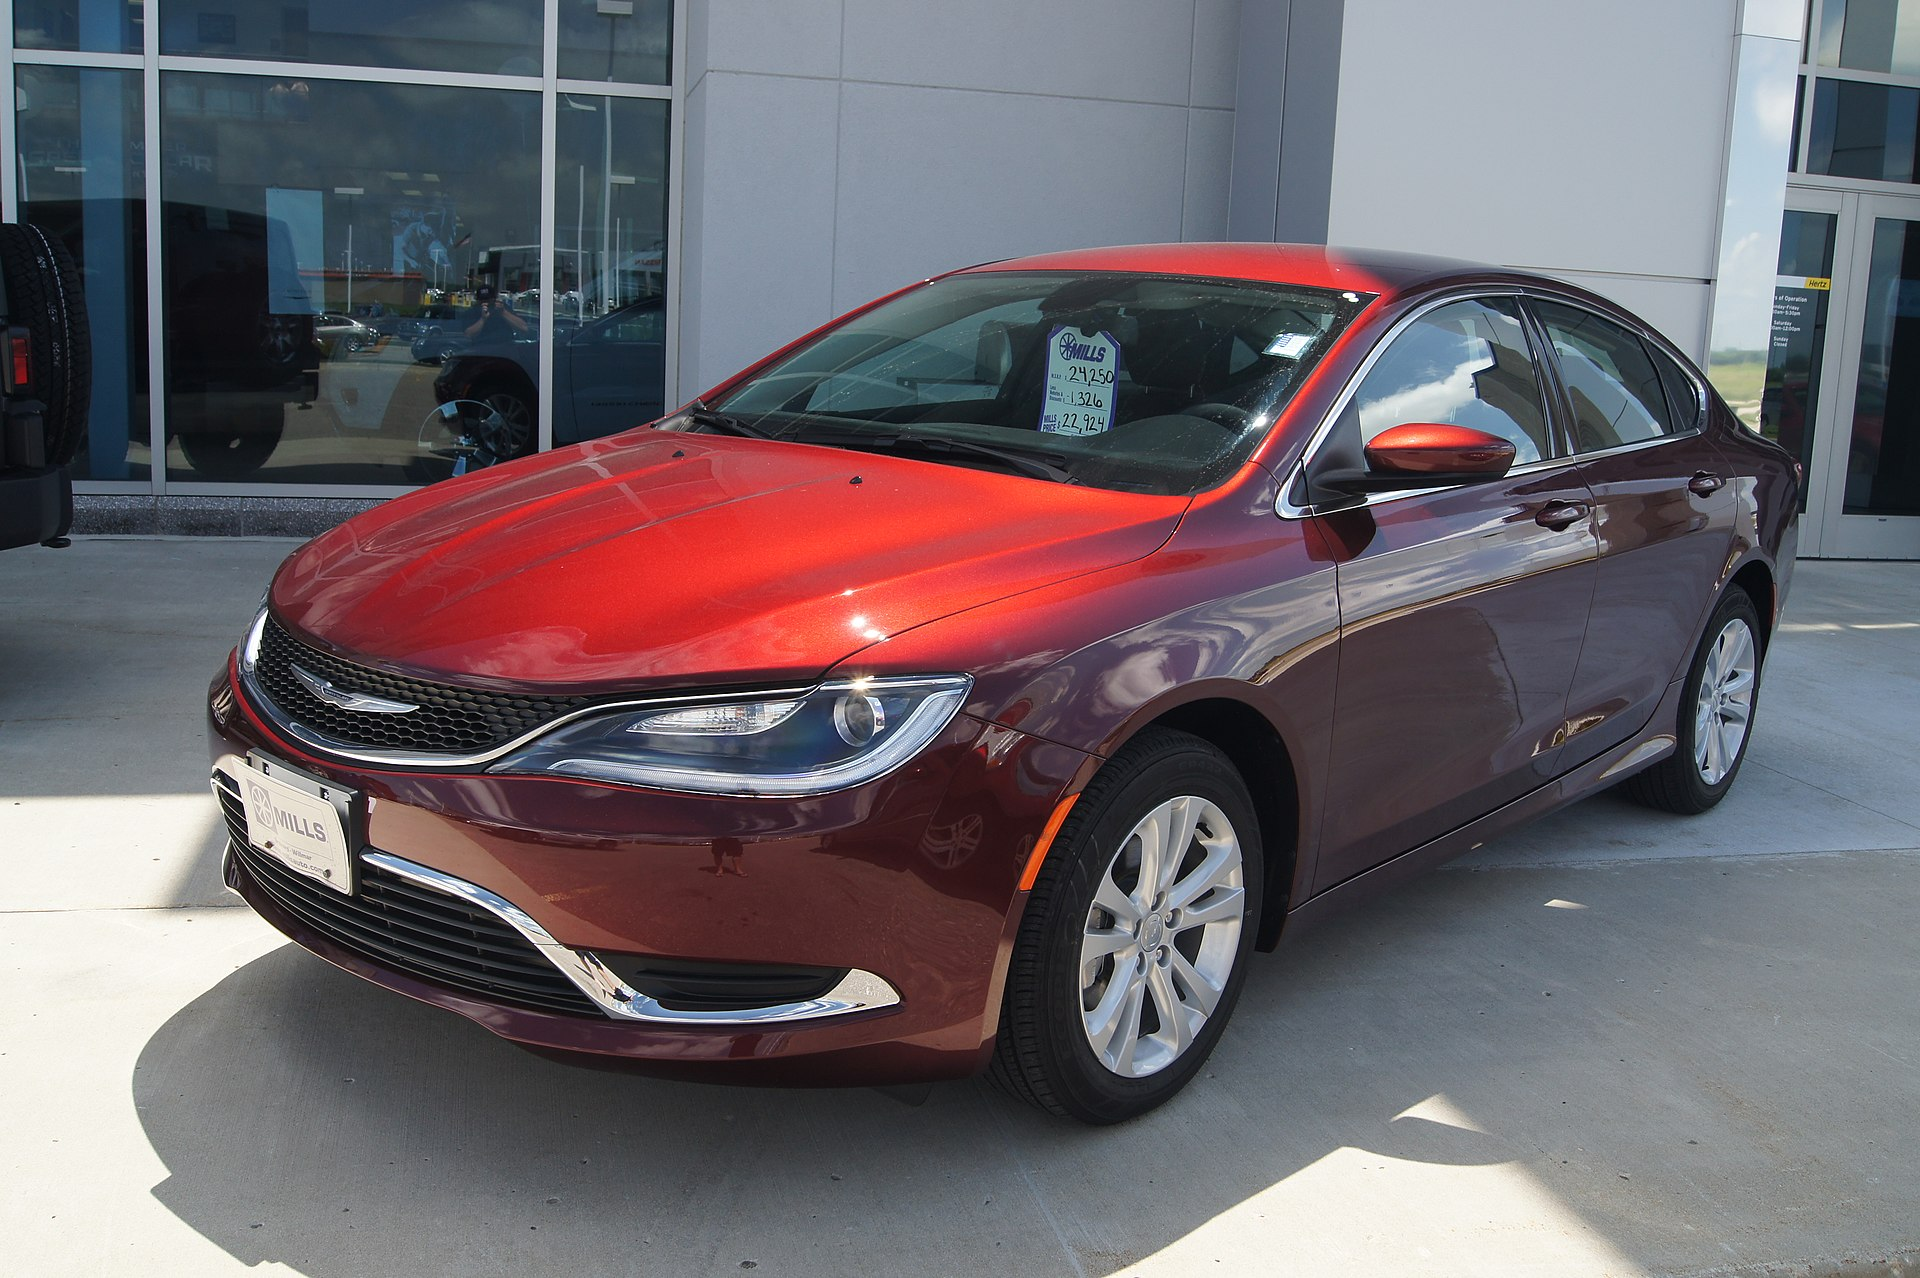 2015 Chrysler 200 Limited.jpg